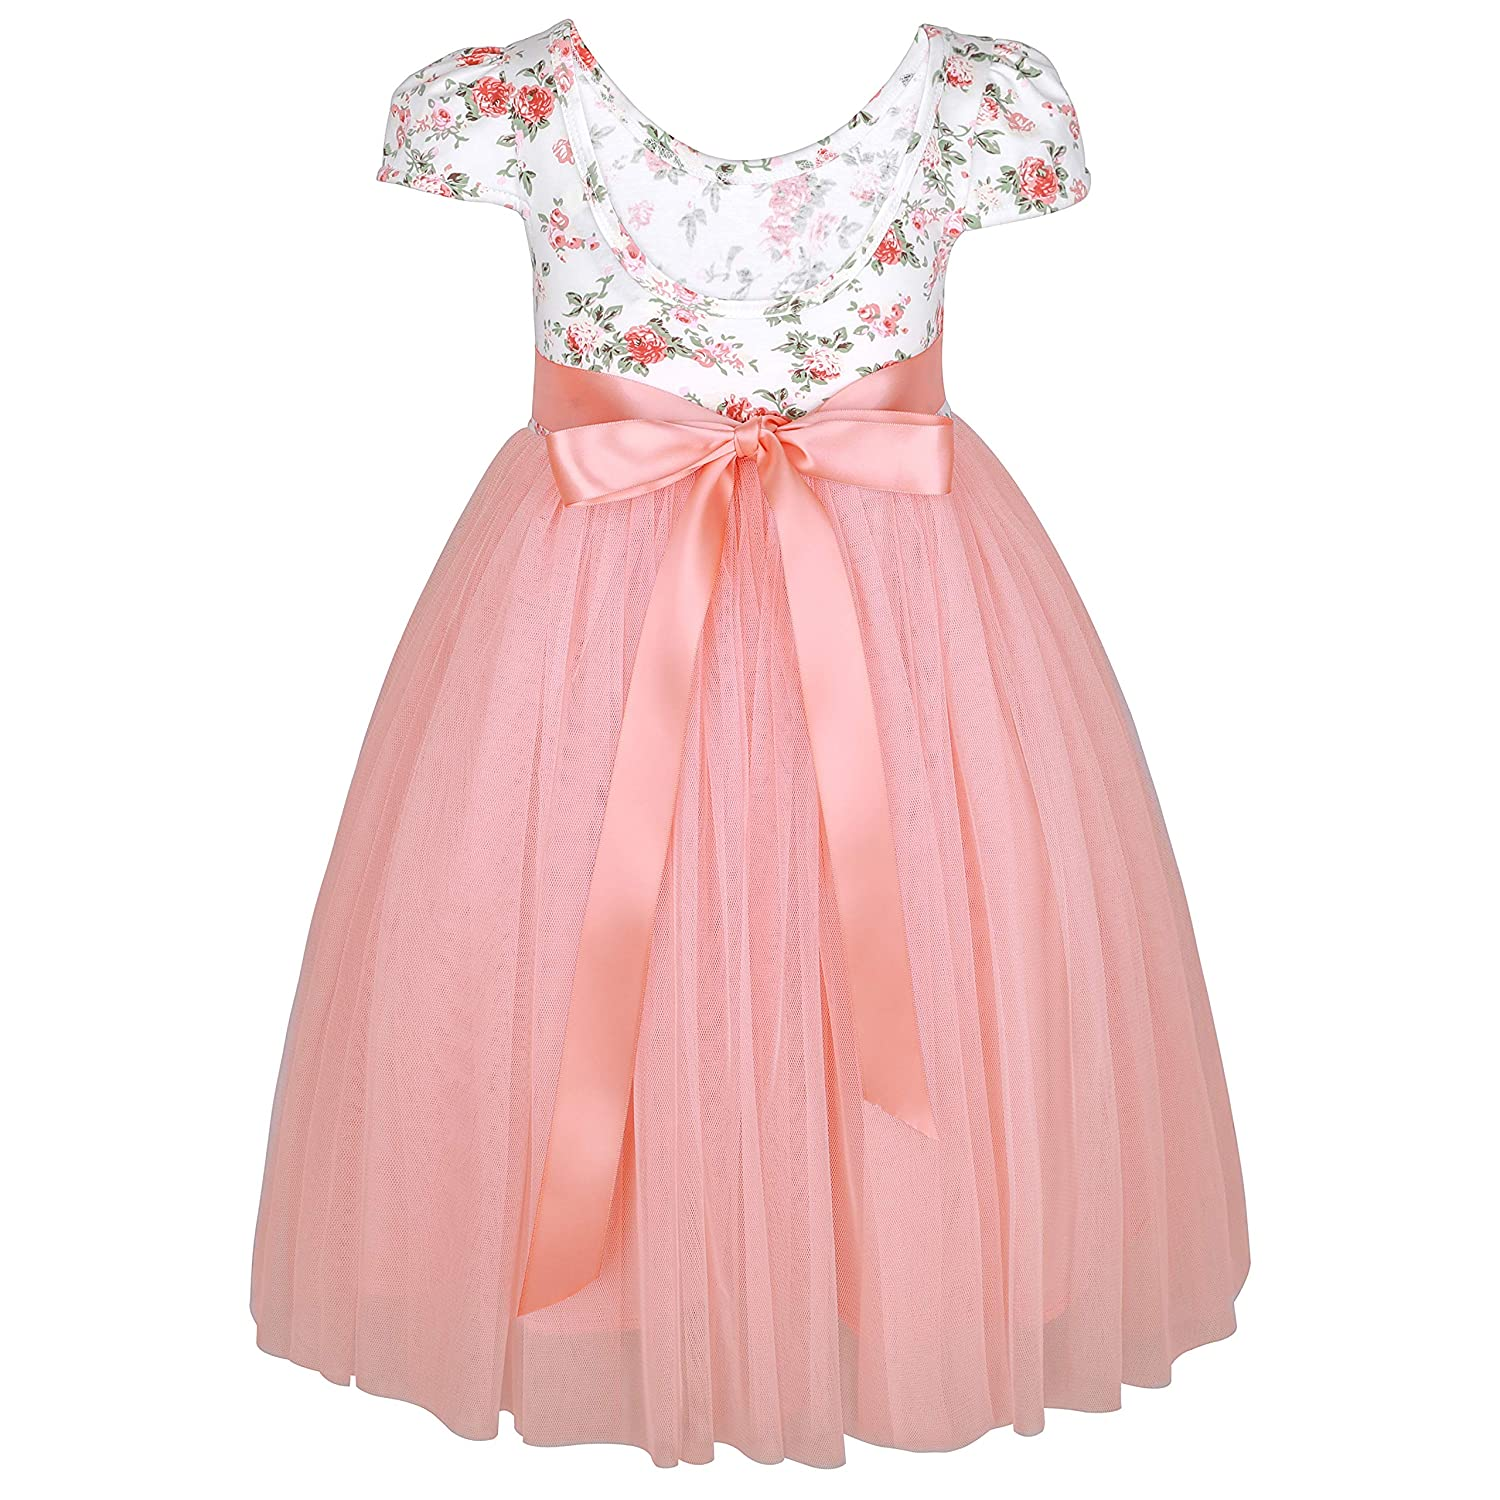 dd0e83d808 Amazon.com  Flofallzique Easter Girls Dress Vintage Floral Wedding Party  Tulle Princess Dress for 1-12 Y  Clothing